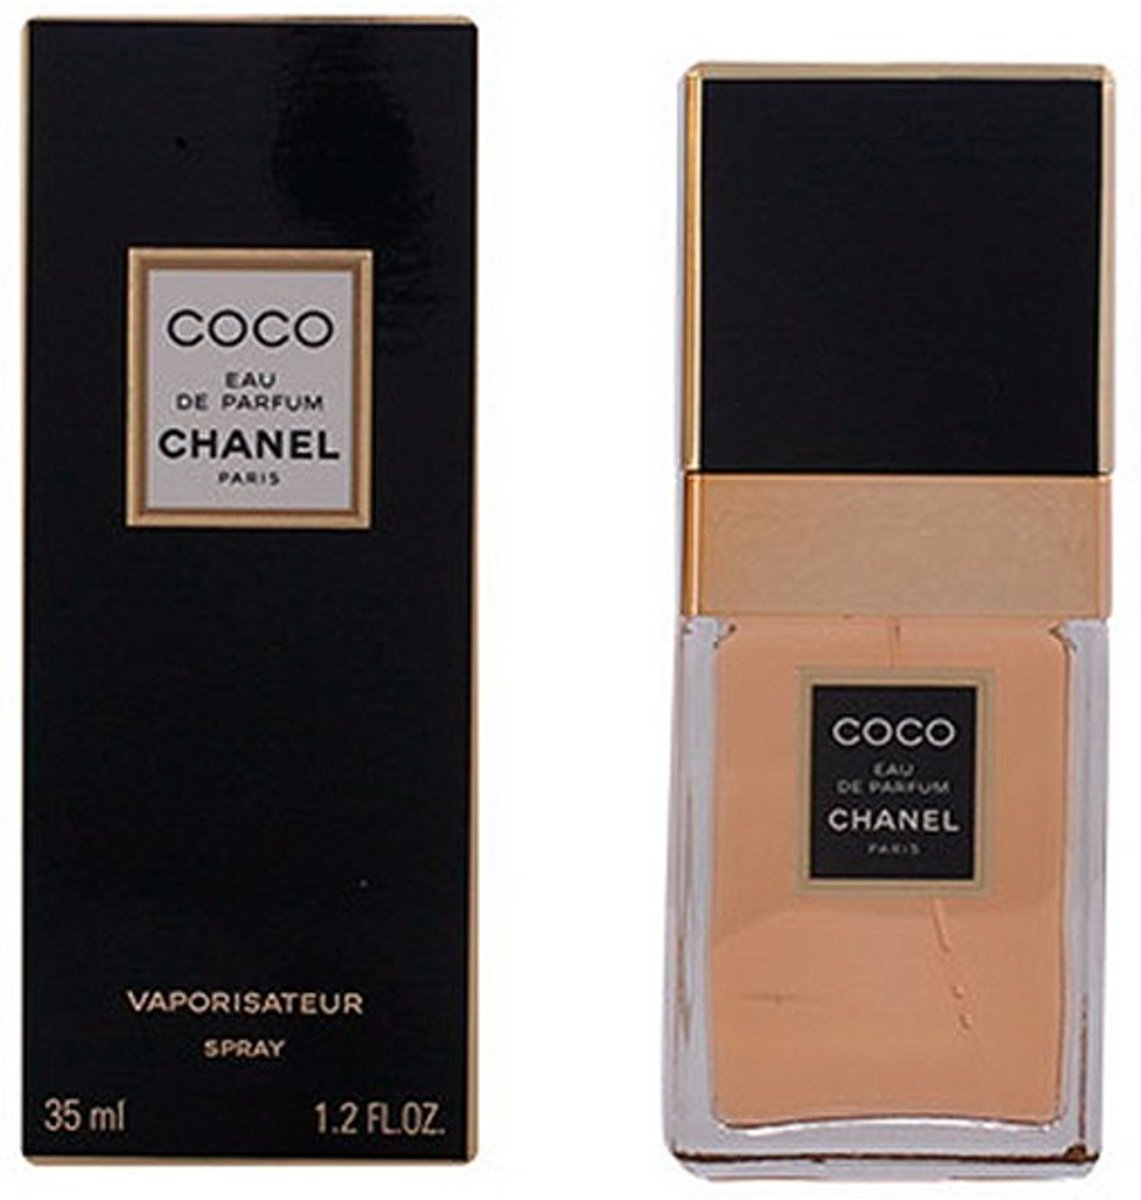 Chanel Coco Edp Spray 35 ml